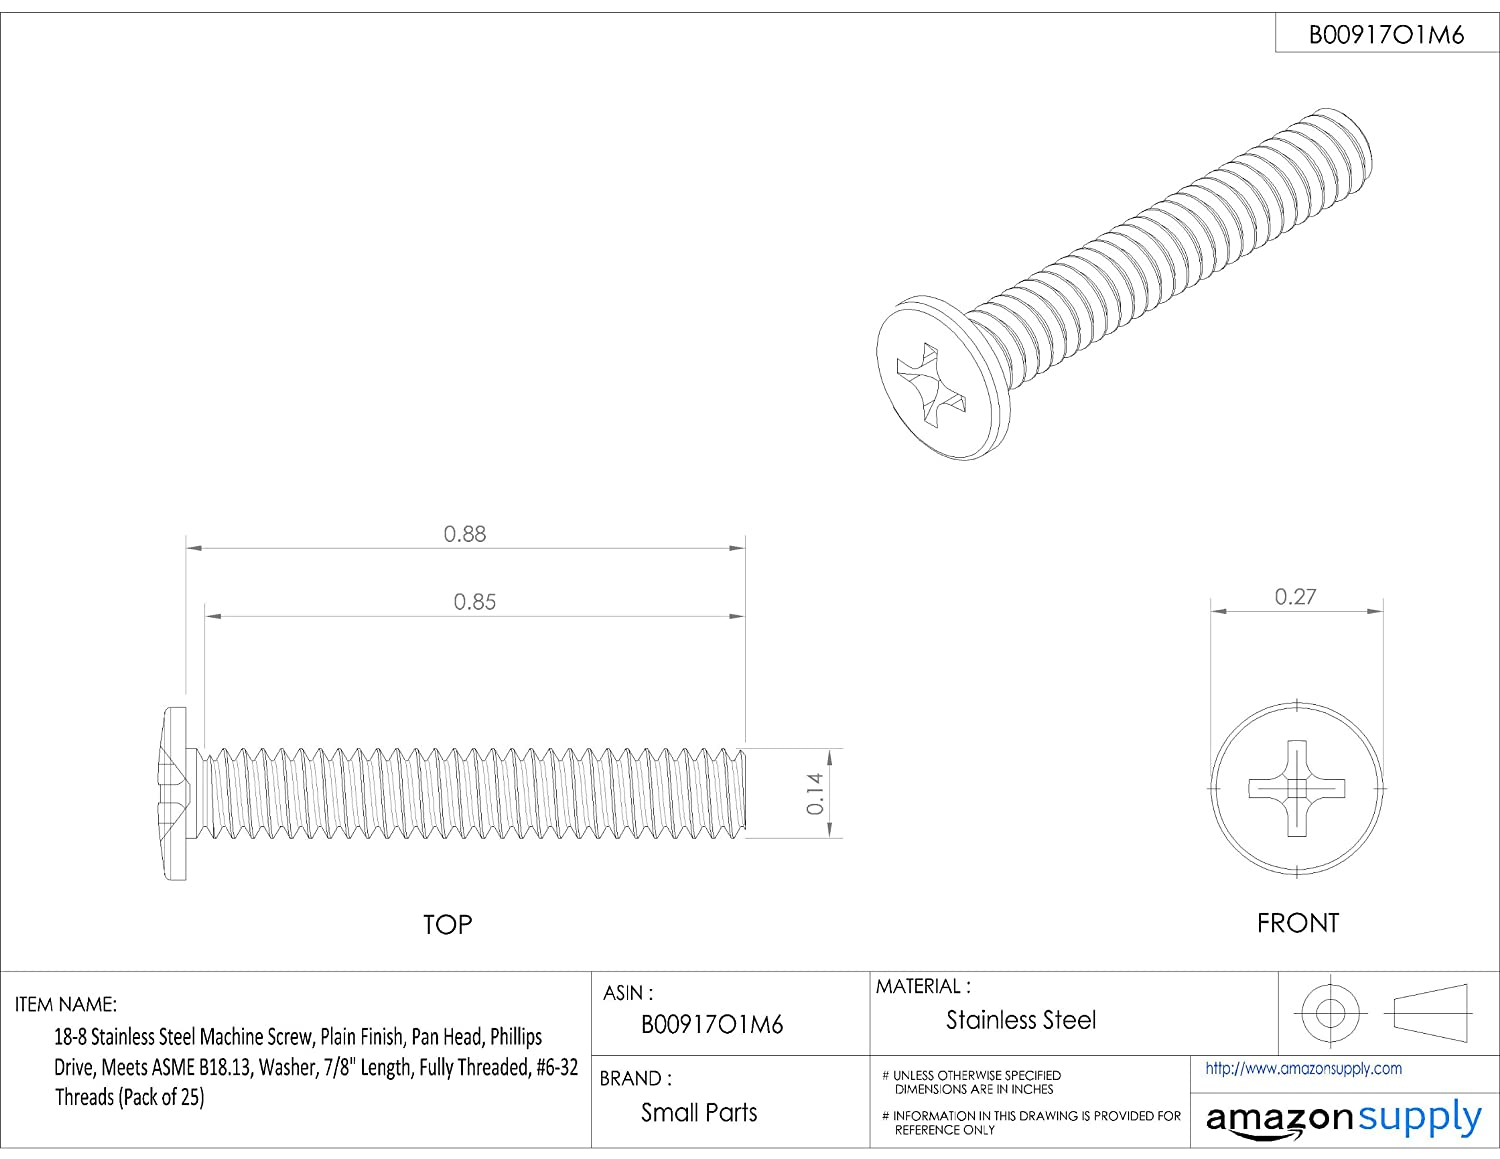 Phillips Drive Meets ASME B18.13 Plain Finish Internal-Tooth Lock Washer Pack of 25 Fully Threaded Pan Head 18-8 Stainless Steel Machine Screw 7//8 Length #6-32 UNC Threads